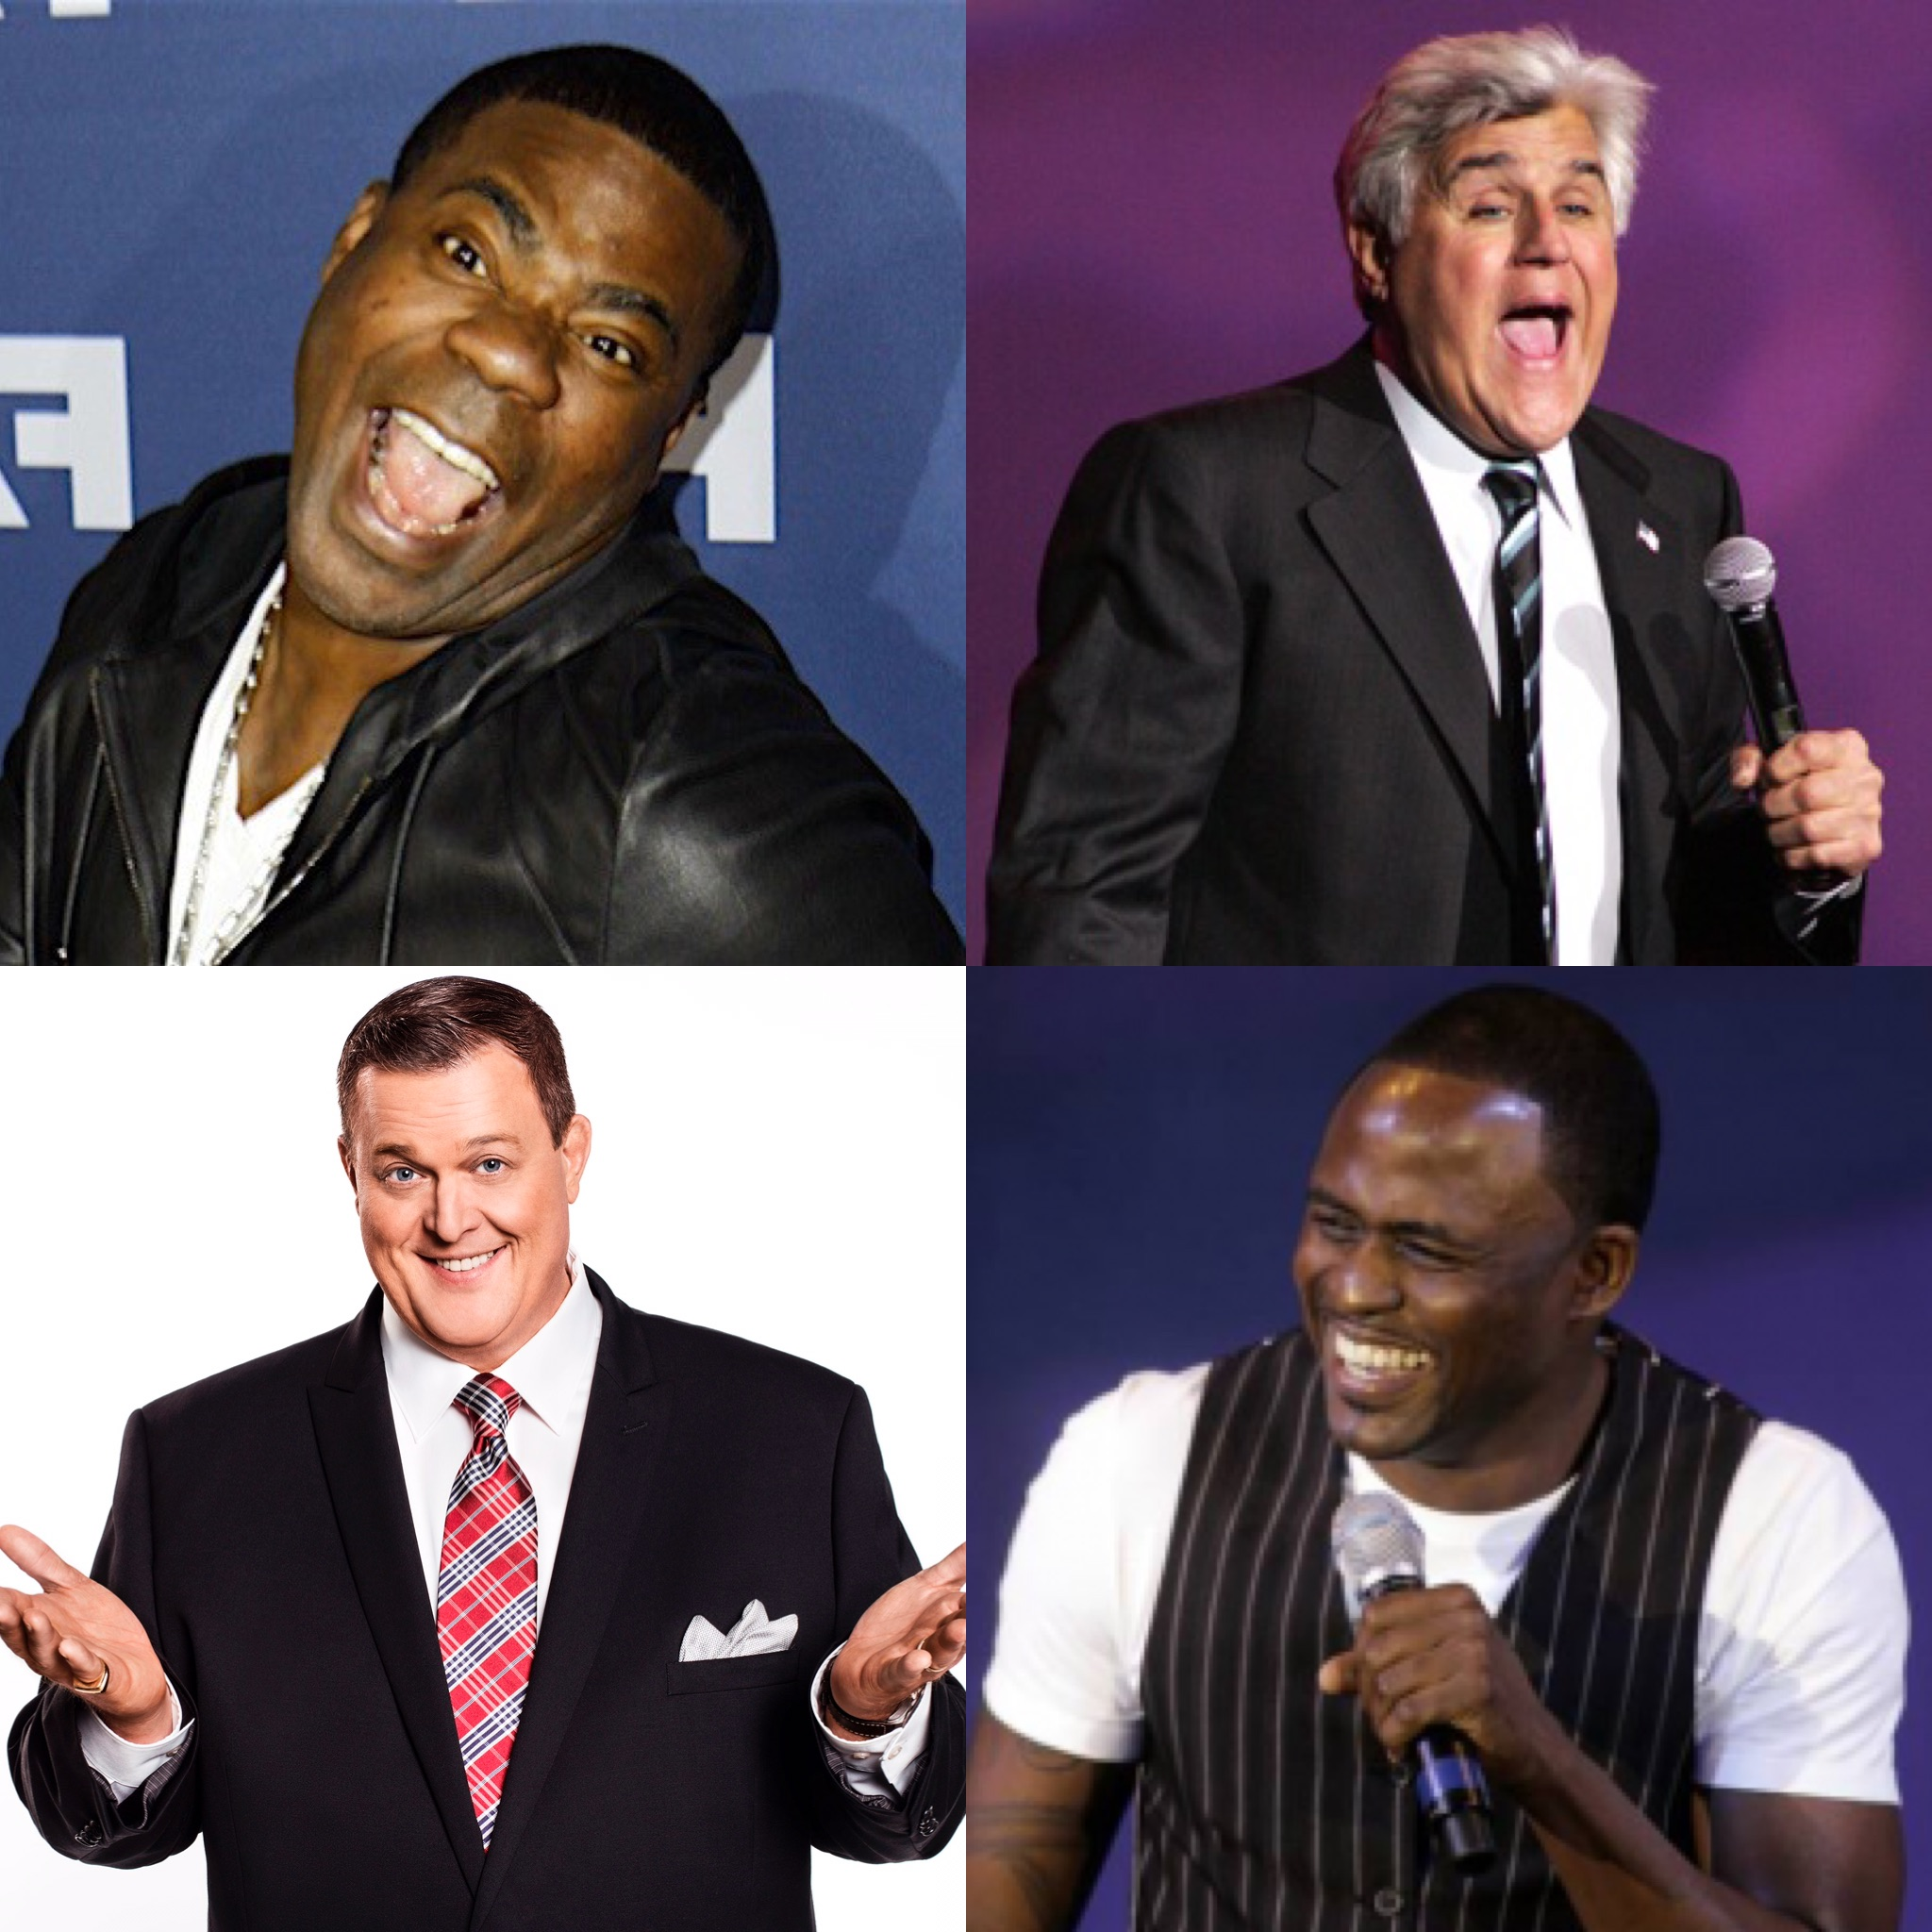 Laughing celebs - morgan, leno, gardell and brady